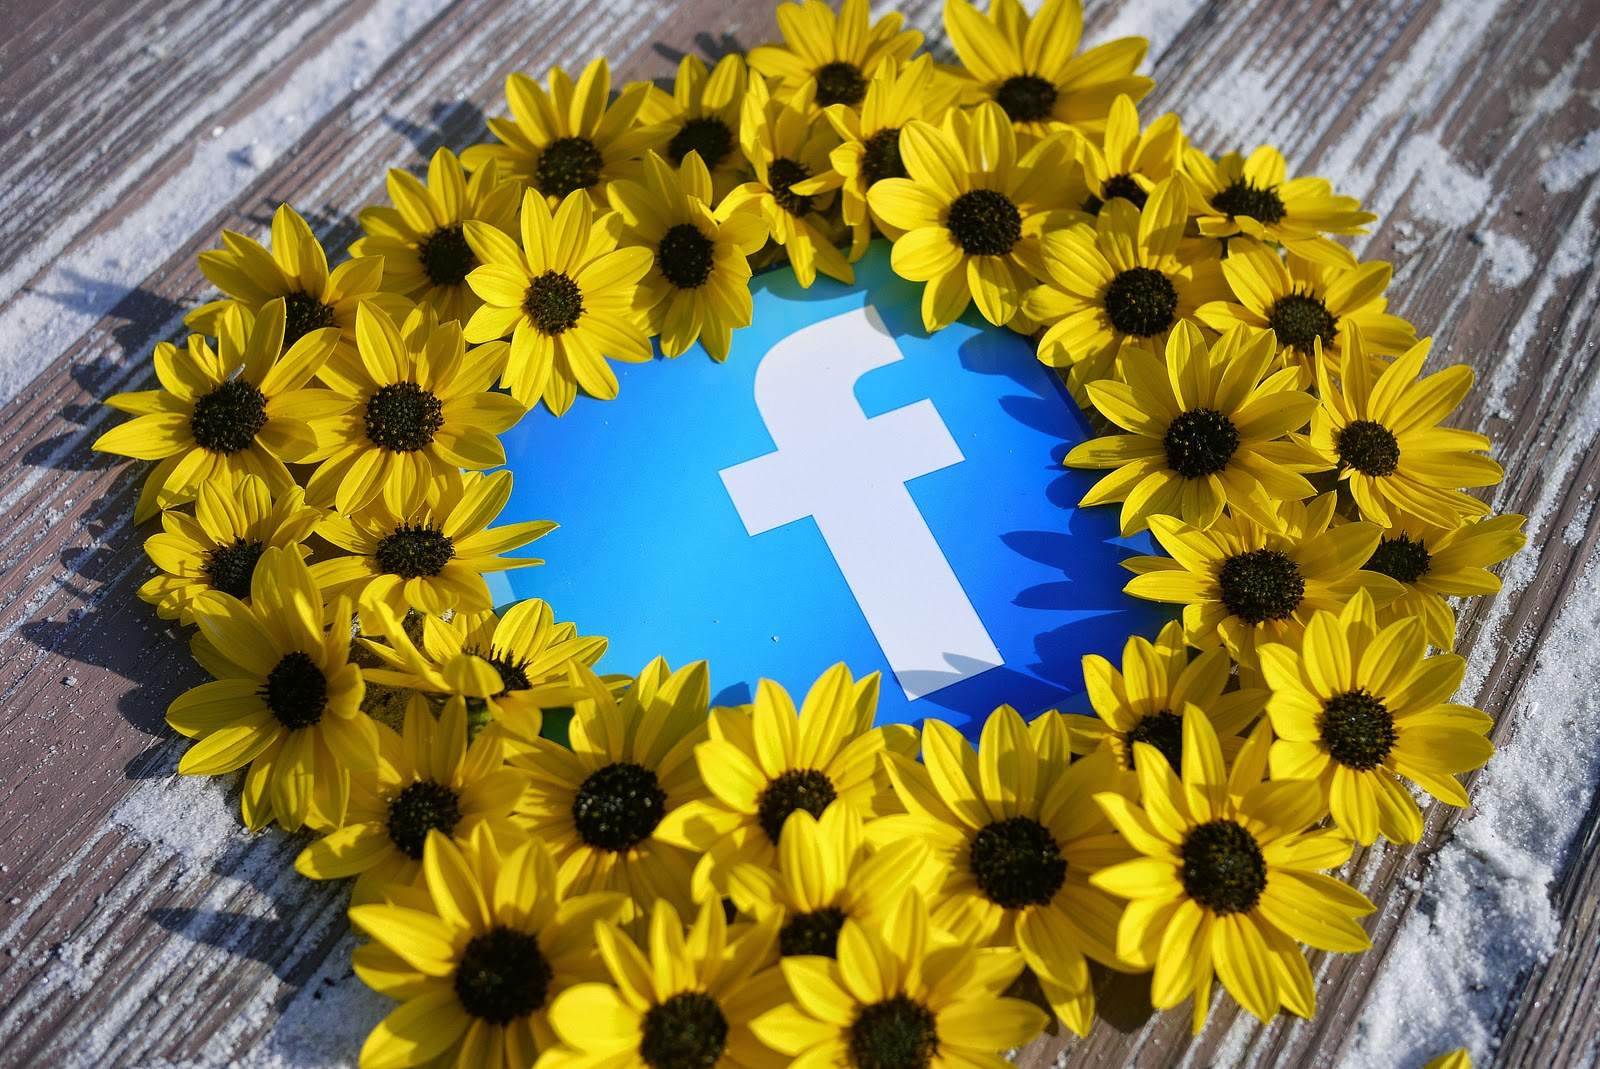 How To Get Shared On Facebook: 16 Ideas To Grow Viral ...